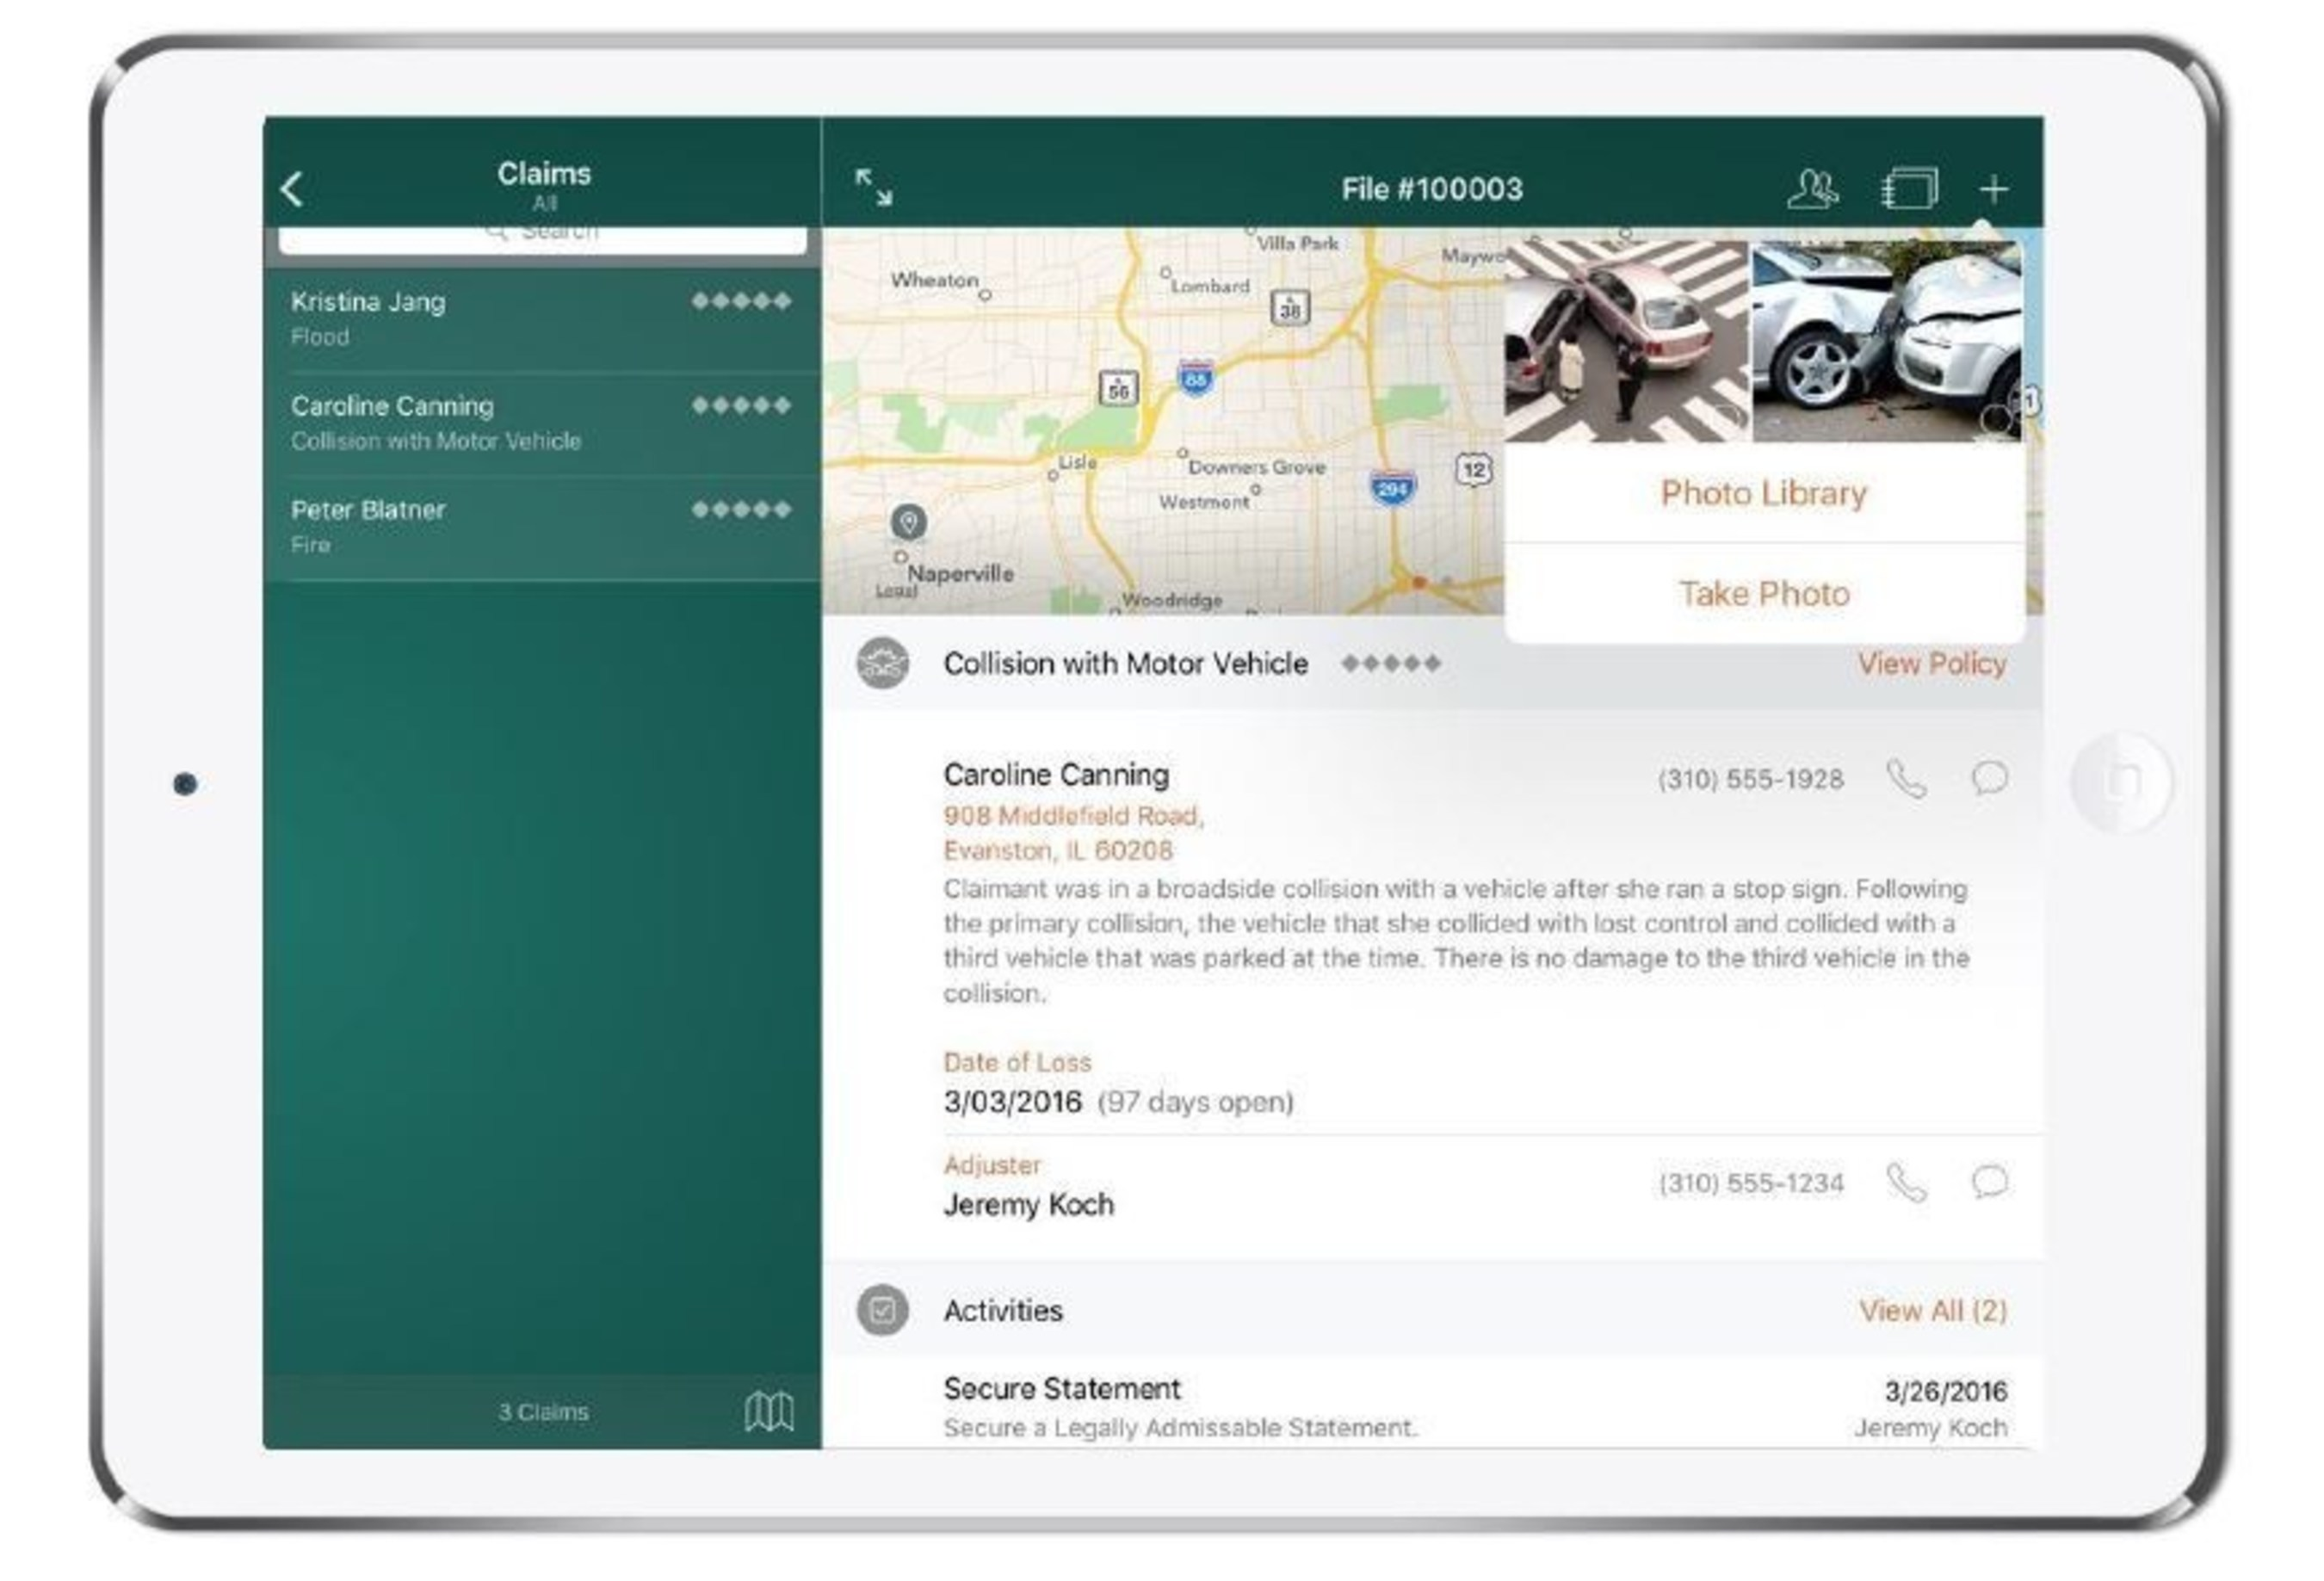 Amica Insurance, the oldest mutual insurer of automobiles in the United States, is transforming how its adjusters manage claims by putting real-time claim data and insights in the palm of their hands. Amica will adopt IBM MobileFirst for iOS Claims Adjust, shown here on an iPad Pro.